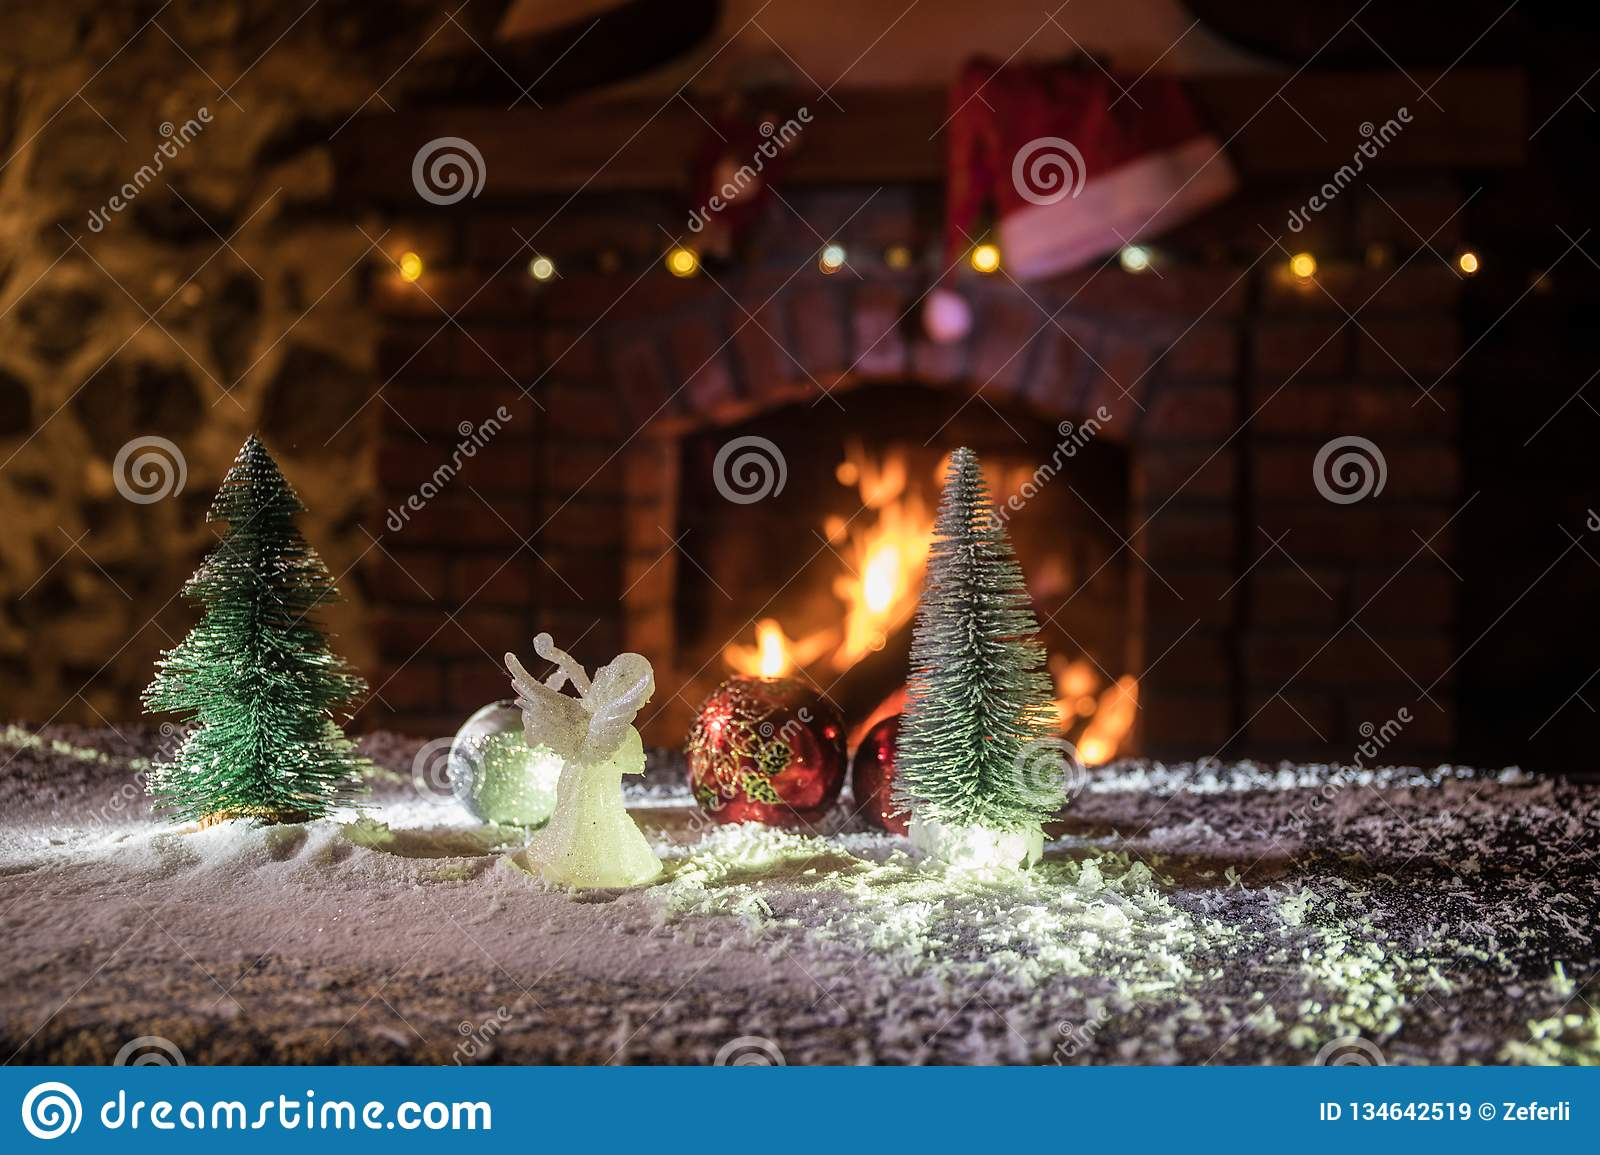 Light Up Presents Christmas Decorations 2 Wallpaperall